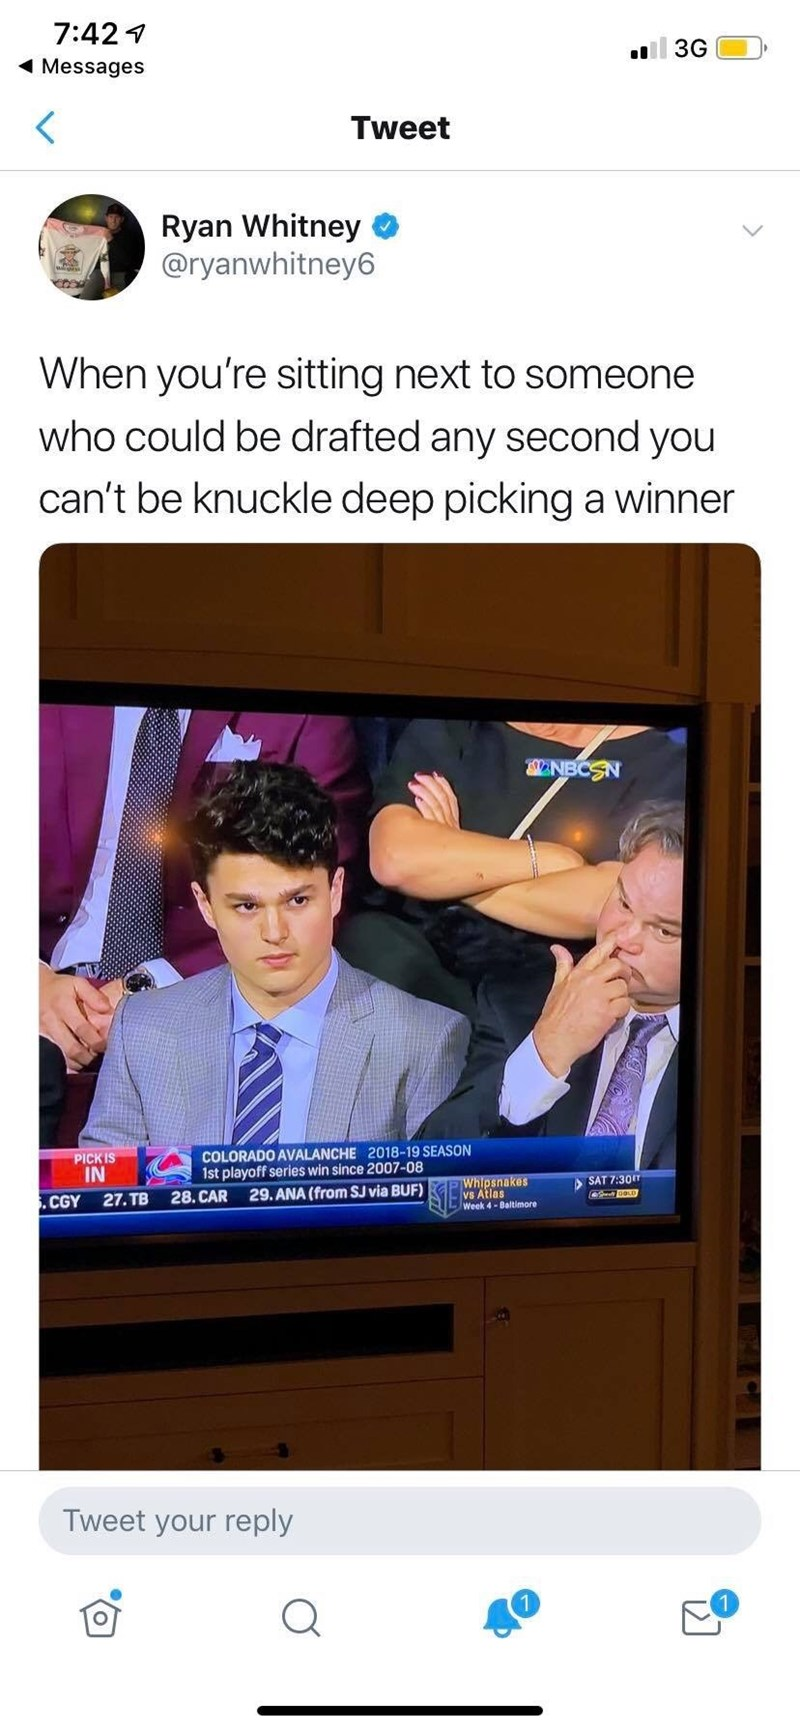 Meme - Product - 7:42 3G Messages Tweet Ryan Whitney @ryanwhitney6 When you're sitting next to someone who could be drafted any second you can't be knuckle deep picking a winner NBCSN COLORADO AVALANCHE 2018-19 SEASON 1st playoff series win since 2007-08 29.ANA (from SJ via BUF) PICK IS IN Whipsnakes vs Atlas LWeek 4-Baltimore SAT 7:30m 28. CAR 27. TB .CGY Tweet your reply